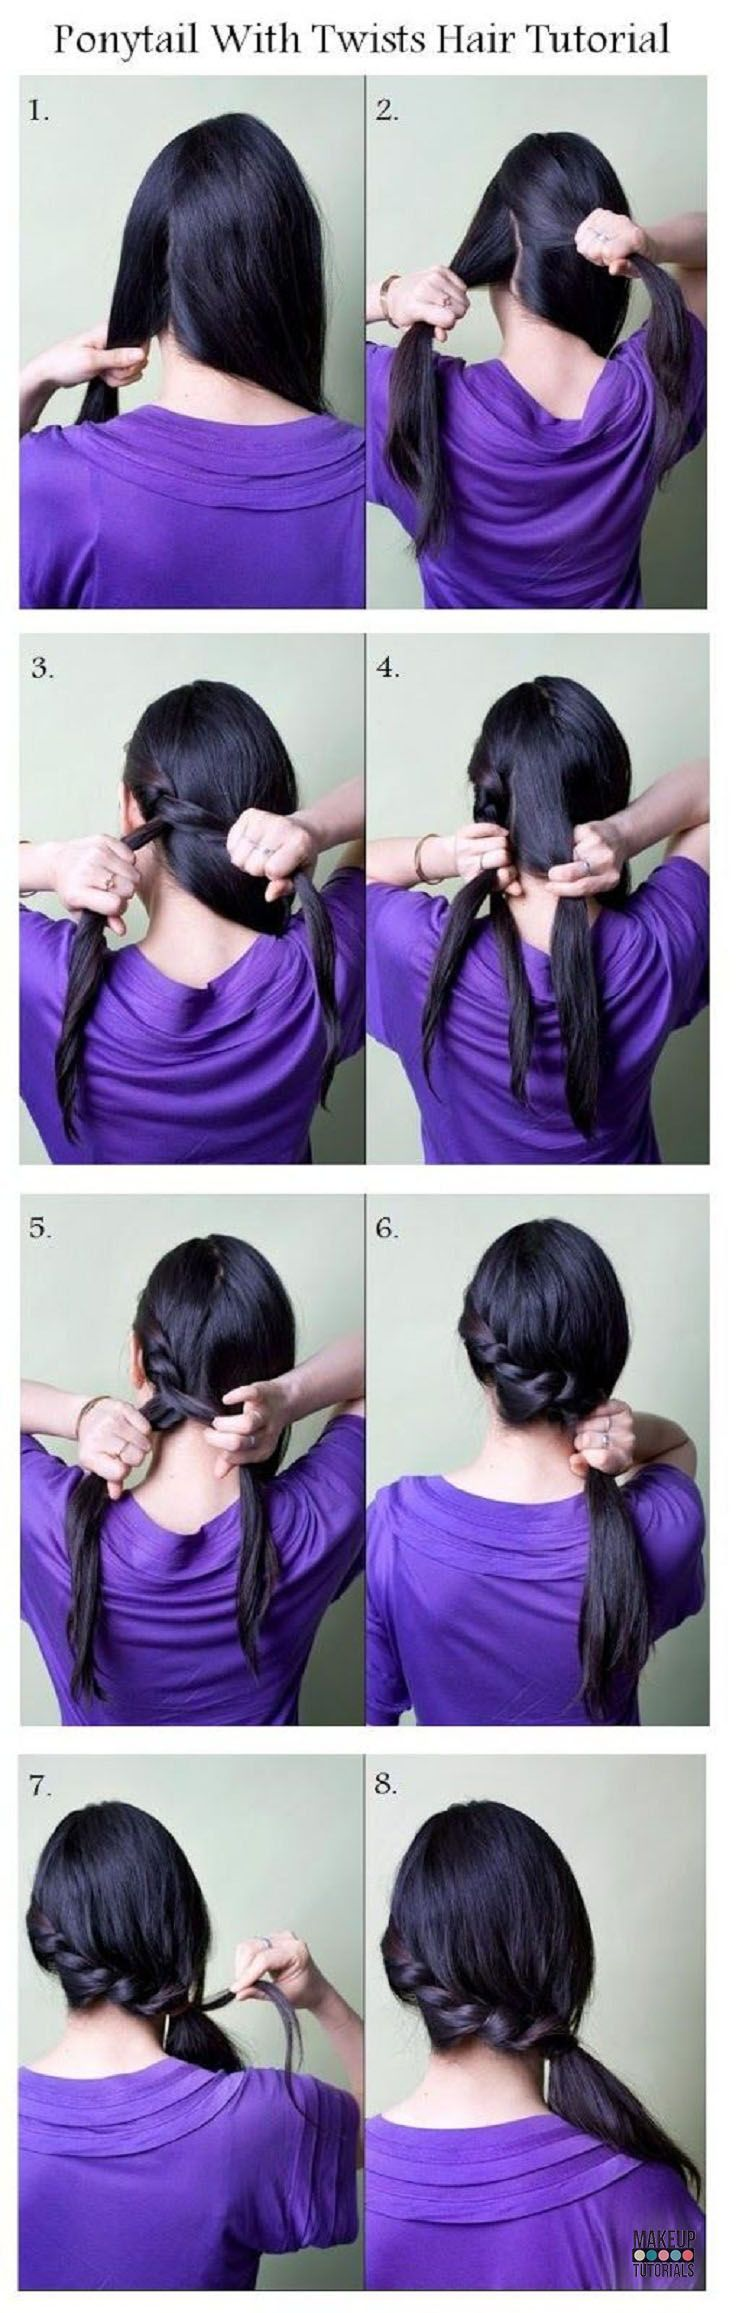 Twist Hairstyles - 21 Lovely French Braid Tutorials For Every Woman | Step By St...